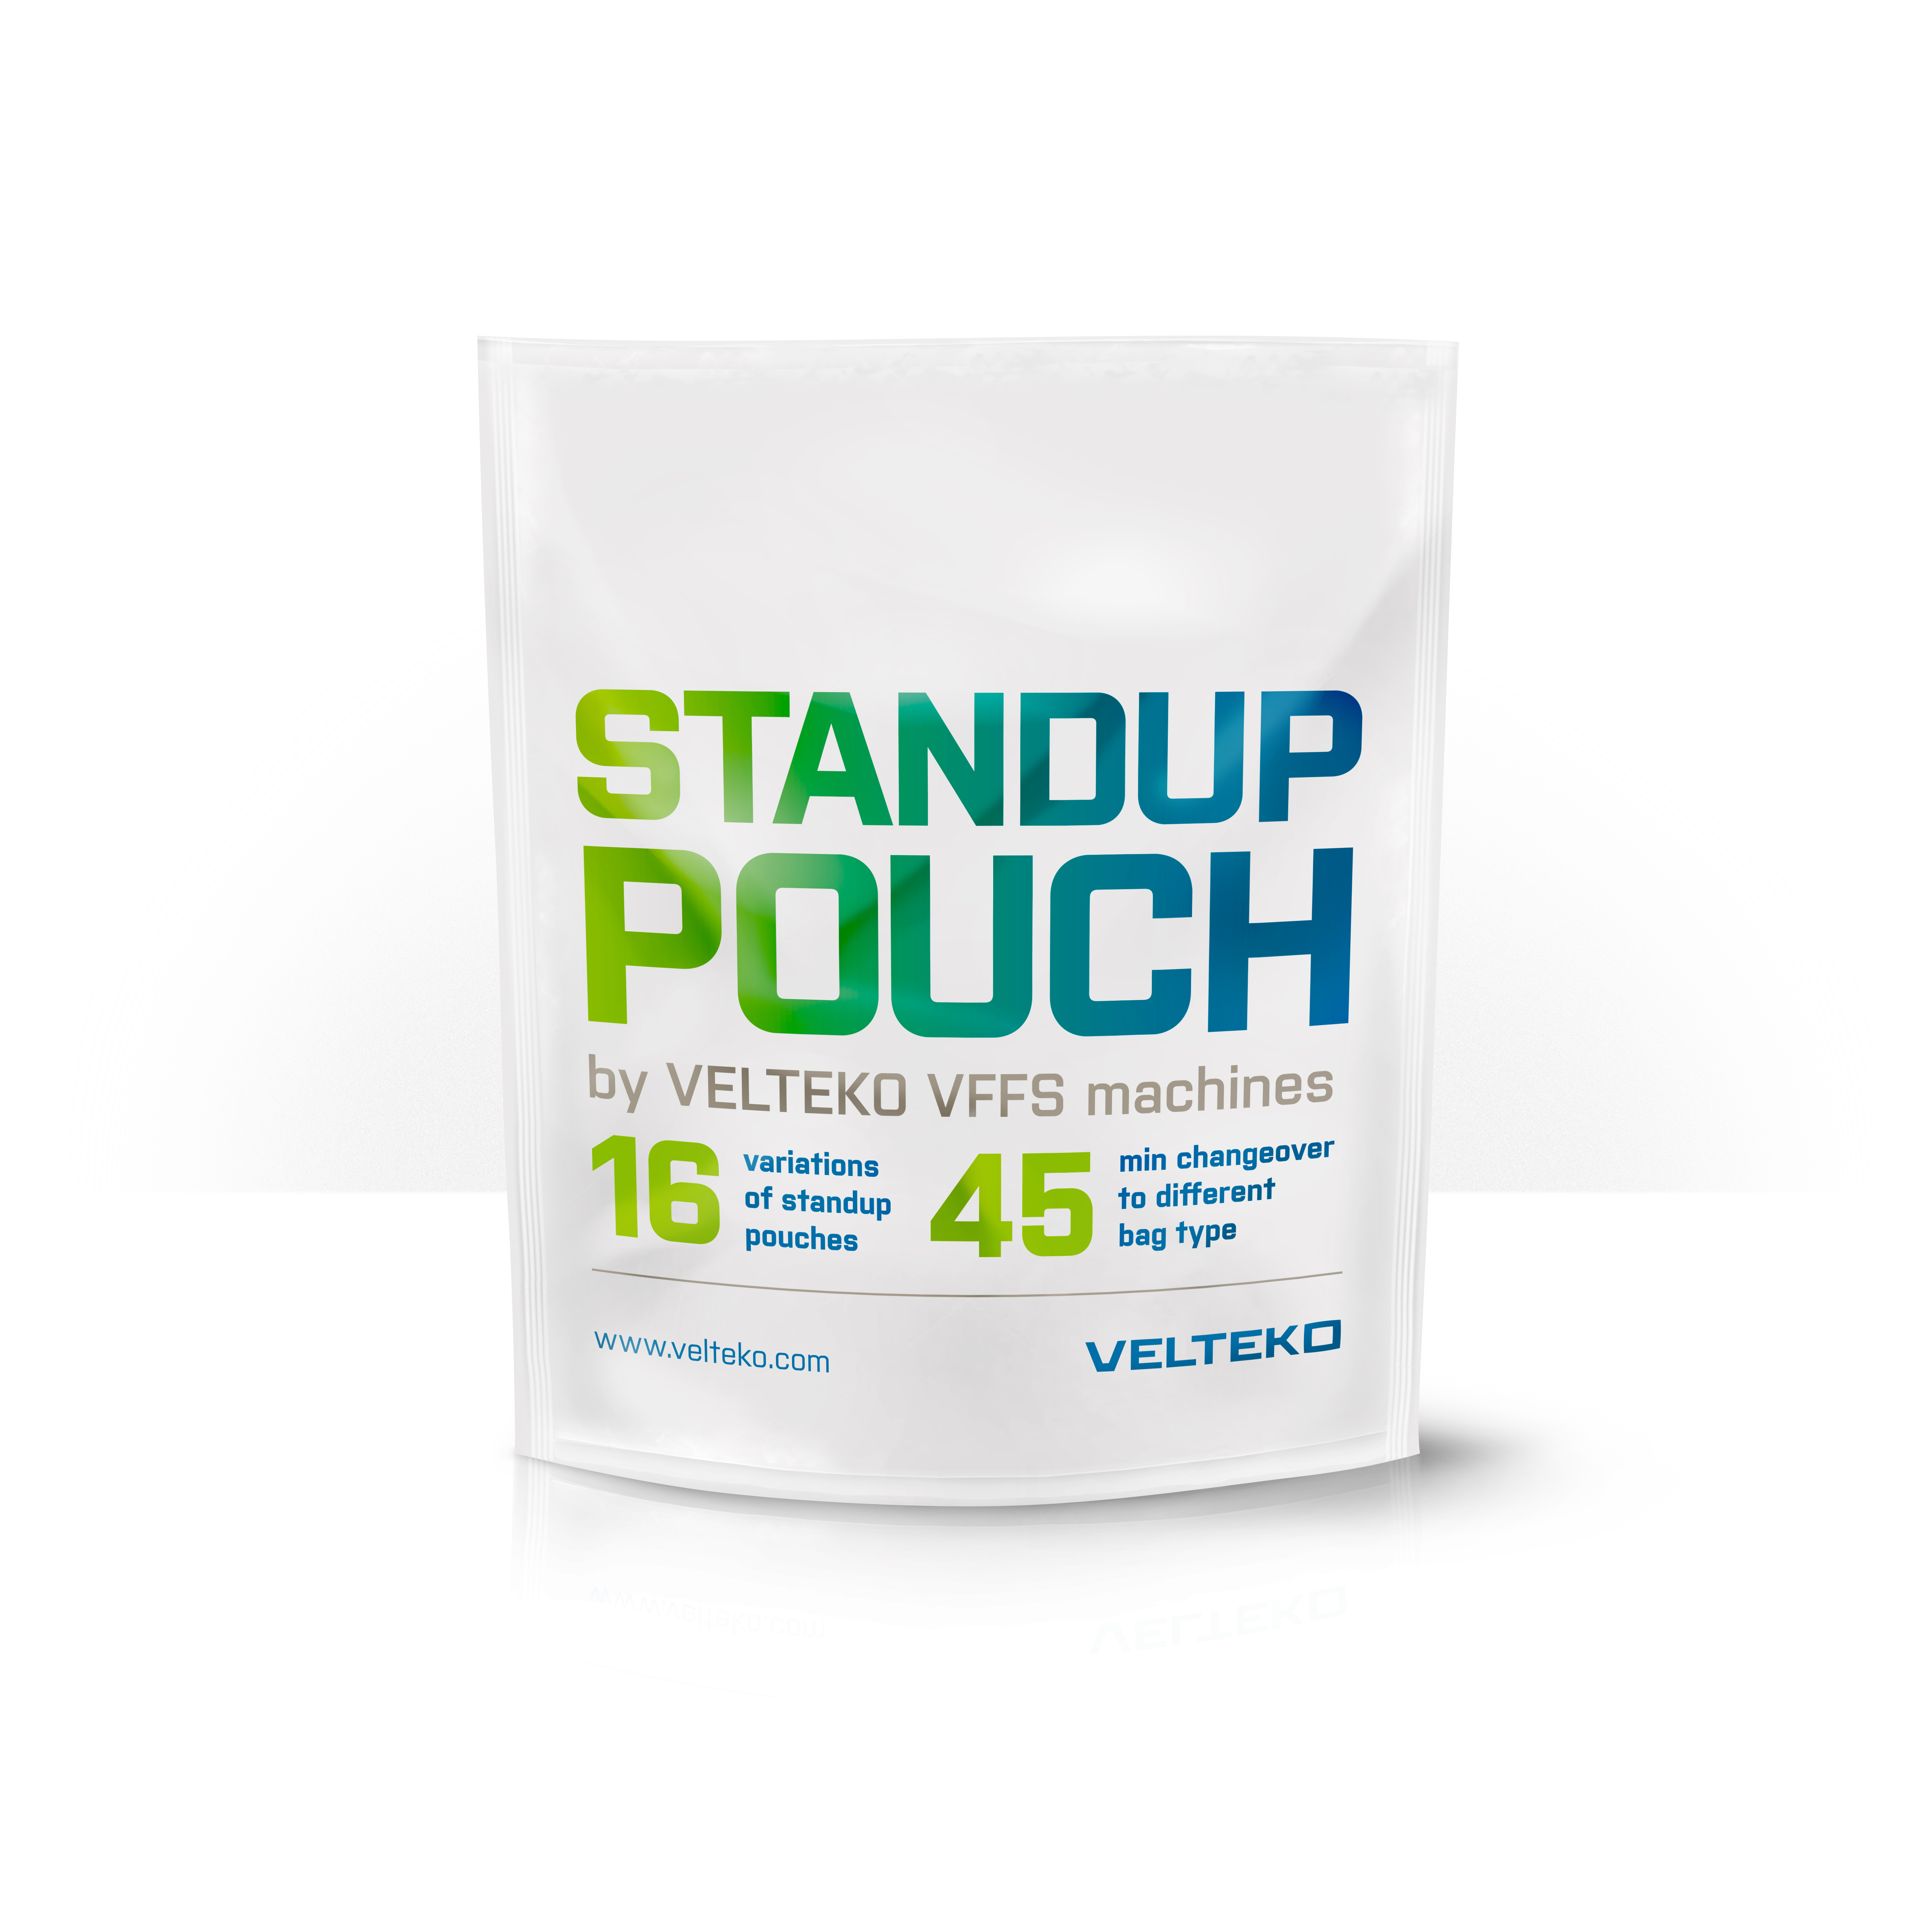 Stand up pouches created on Velteko vertical packaging machines